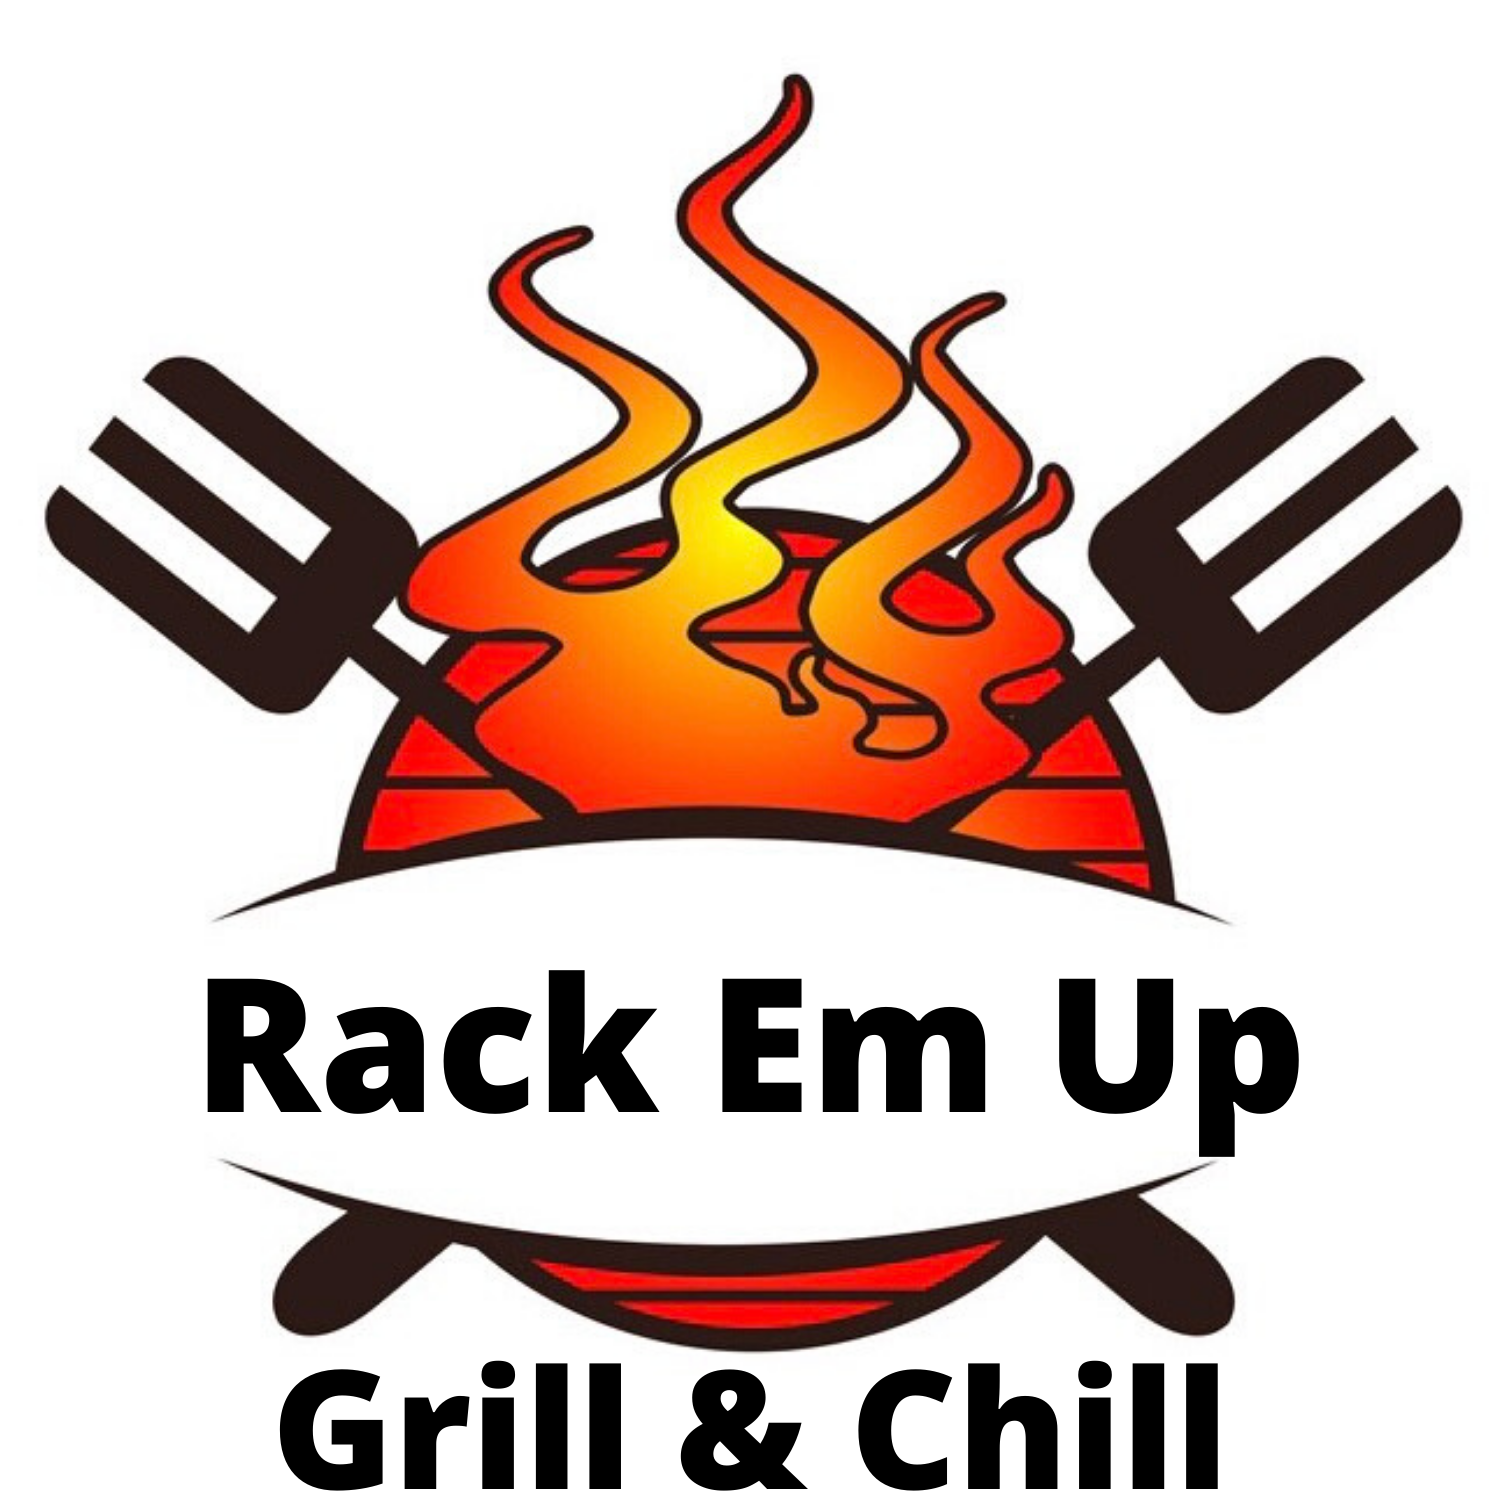 Rack Em Up Grill & Chill